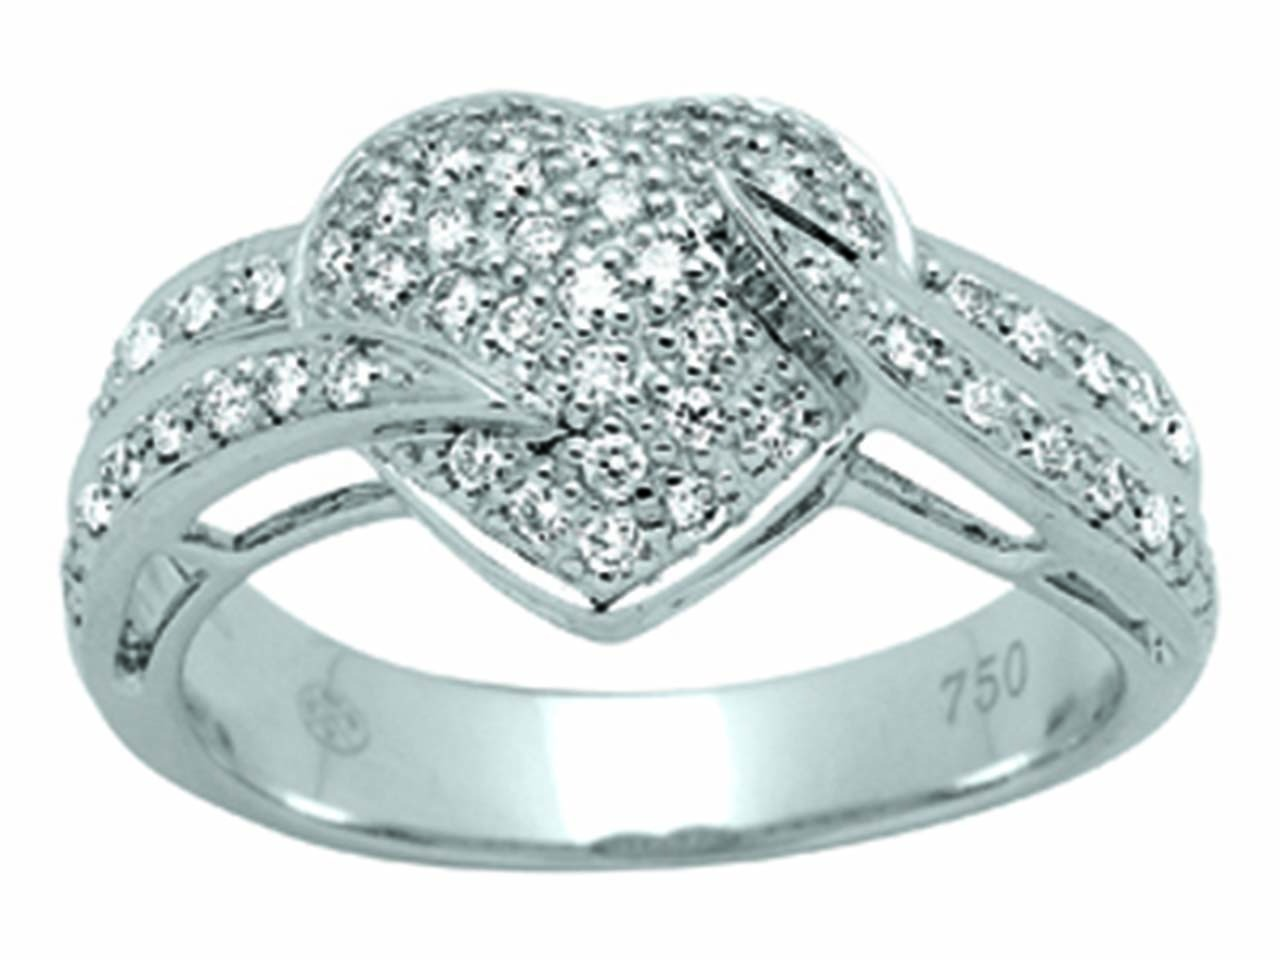 Bague coeur Or gris, diamants 0,40 ct